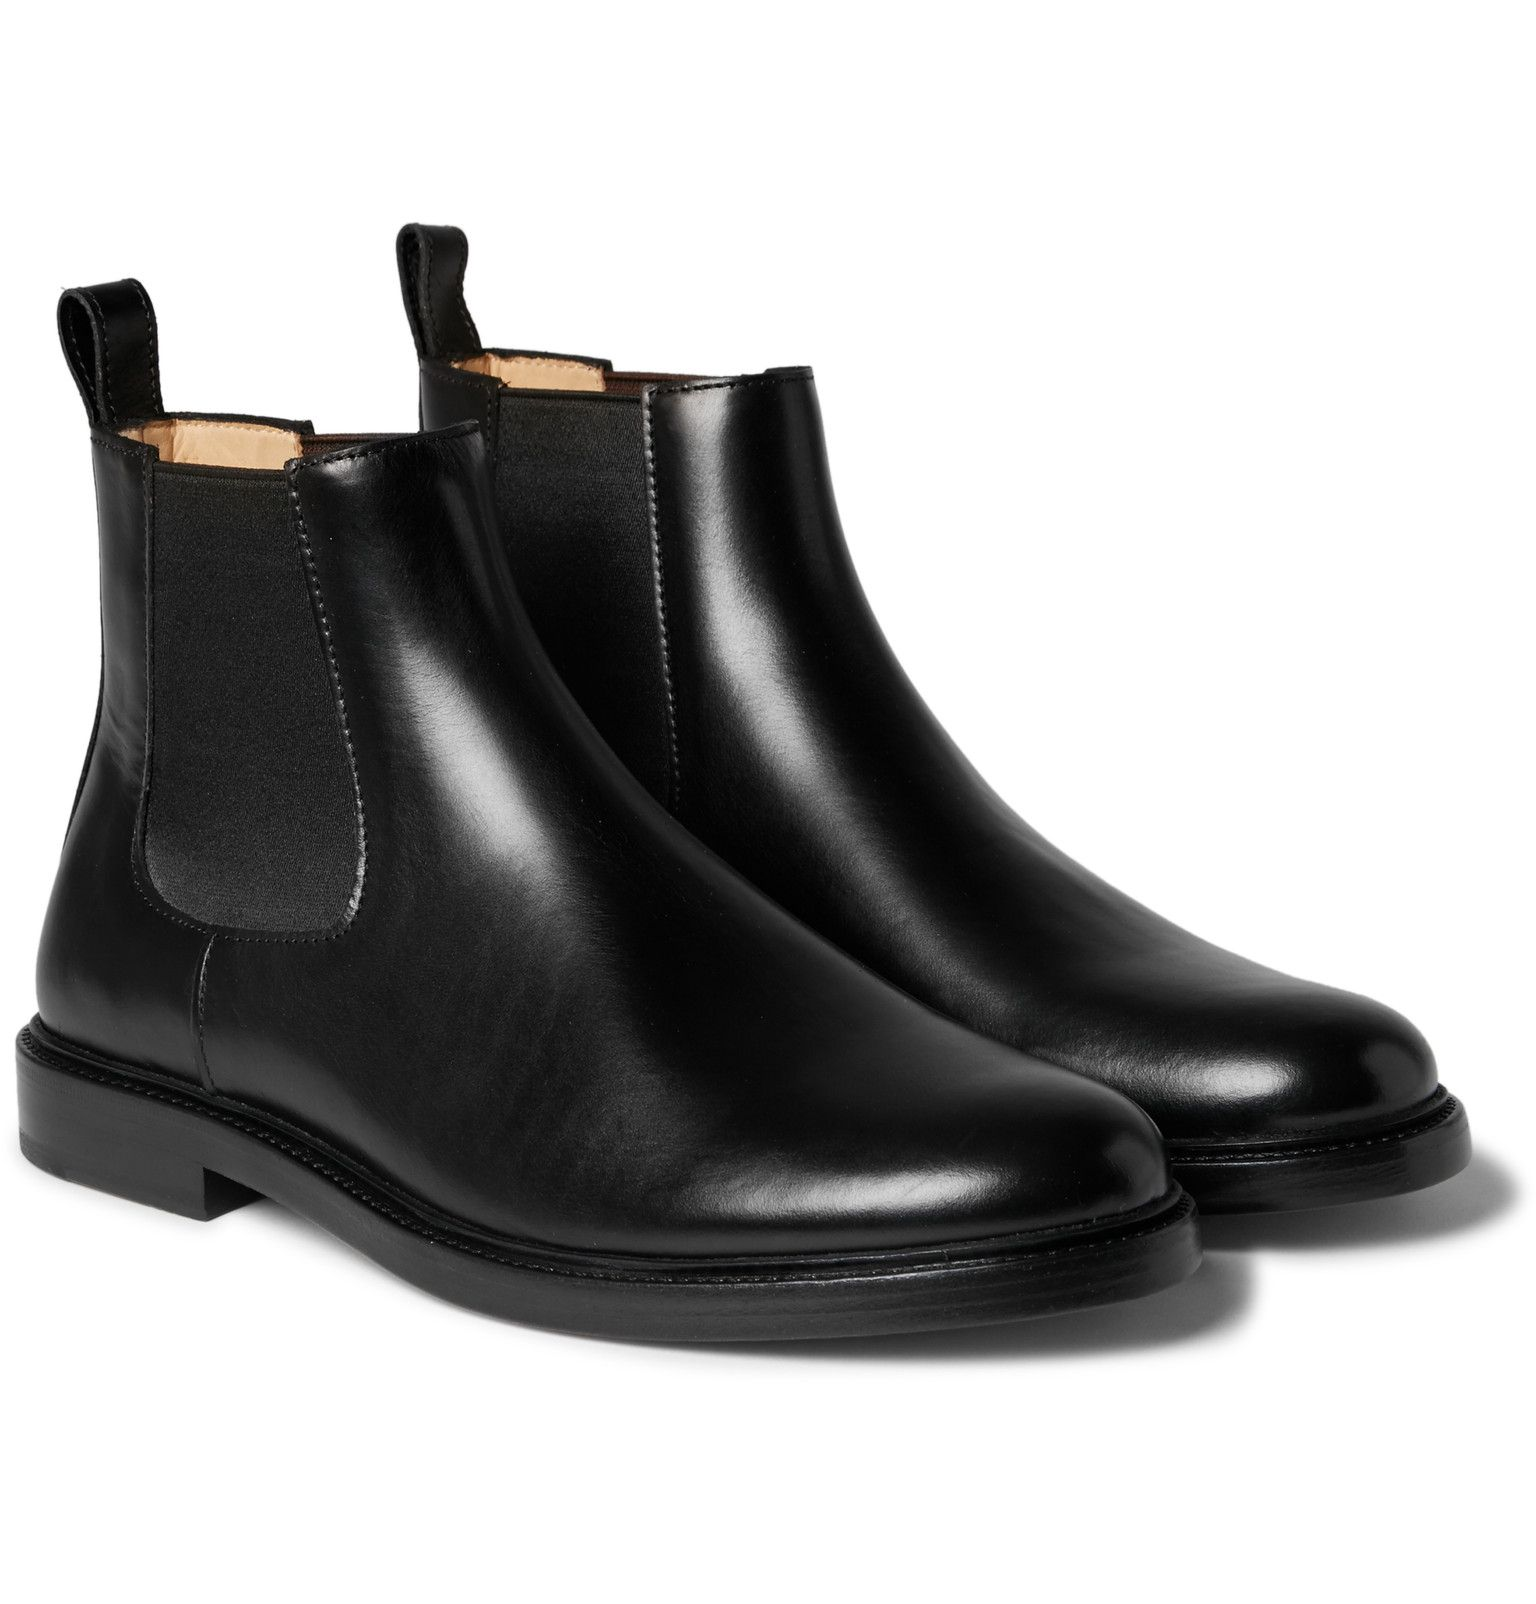 A.P.C. - Leather Chelsea Boots | Boots